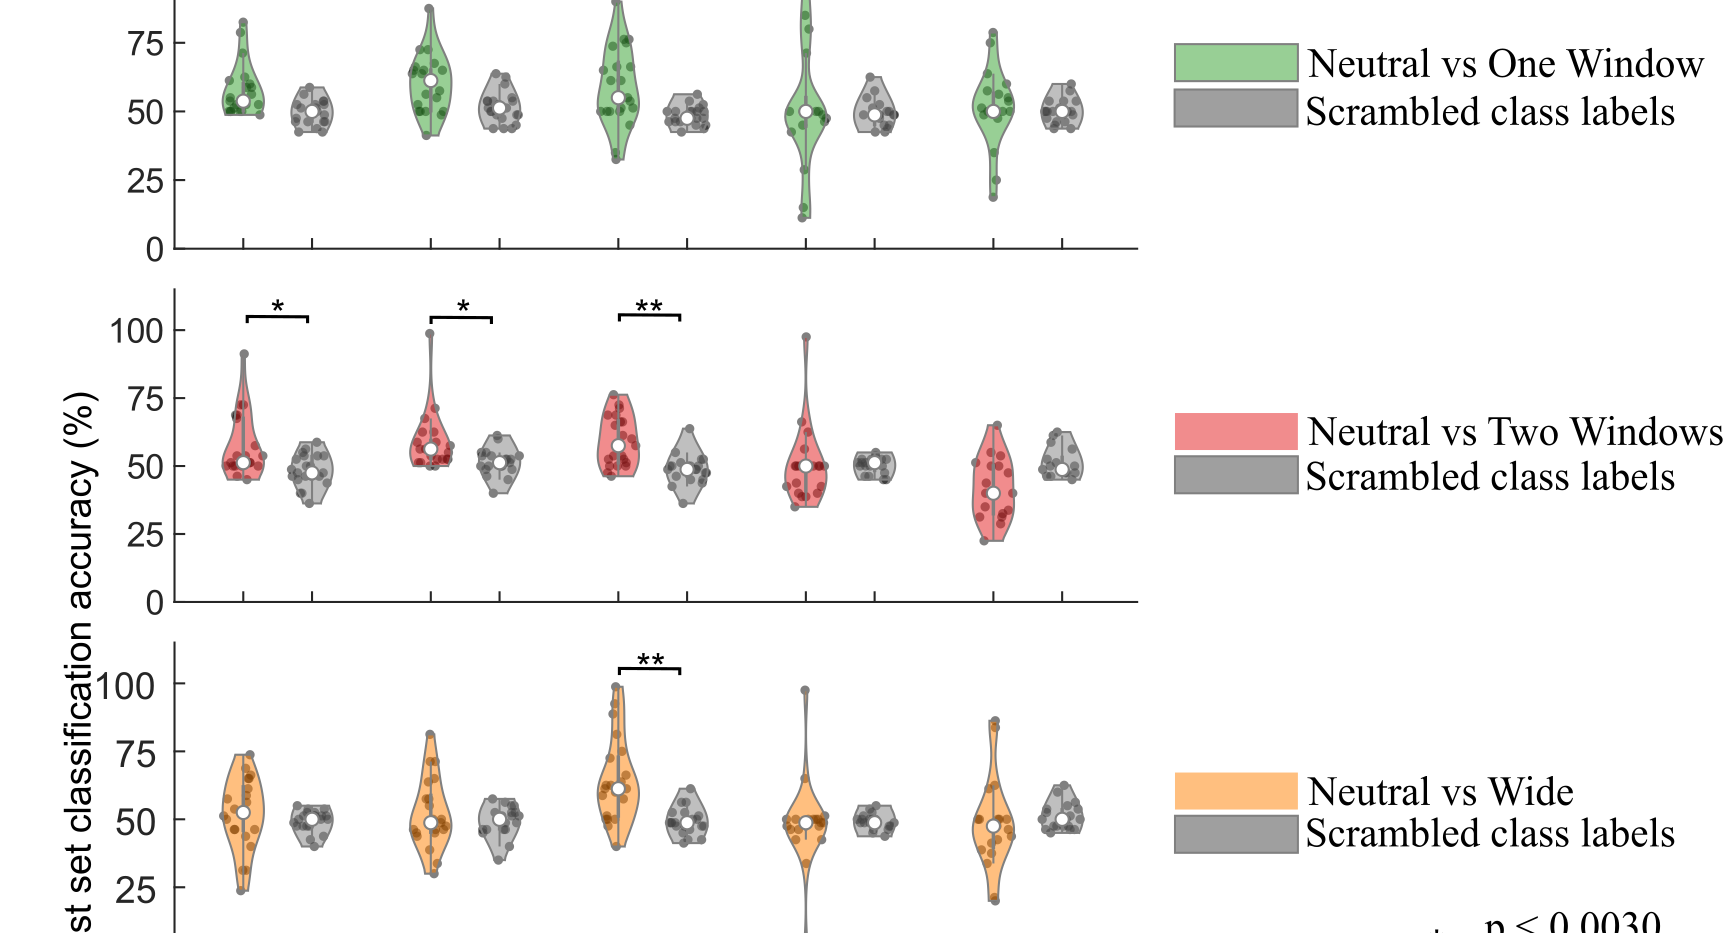 EEG classification accuracy results. A k-SVM (polynomial degree 2) classification model was created from the training data of 22 participants; and tested on unseen data from 1 participant- for 23 iterations. Each dot indicates the classification accuracy in one of the test sets based on the classification model obtained from its corresponding training set. To assess the validity of our results, we also calculated chance levels by scrambling the EEG data class labels in each 2-class comparison. The distribution for the scrambled class labels data is shown in gray. EEG classification accuracies are above the chance levels in most of the classes, and are significantly higher than the chance levels in 5 of the classes, supporting the validity of our method. Statistical significance was calculated using a pair-wise Kruskal-Wallis test.